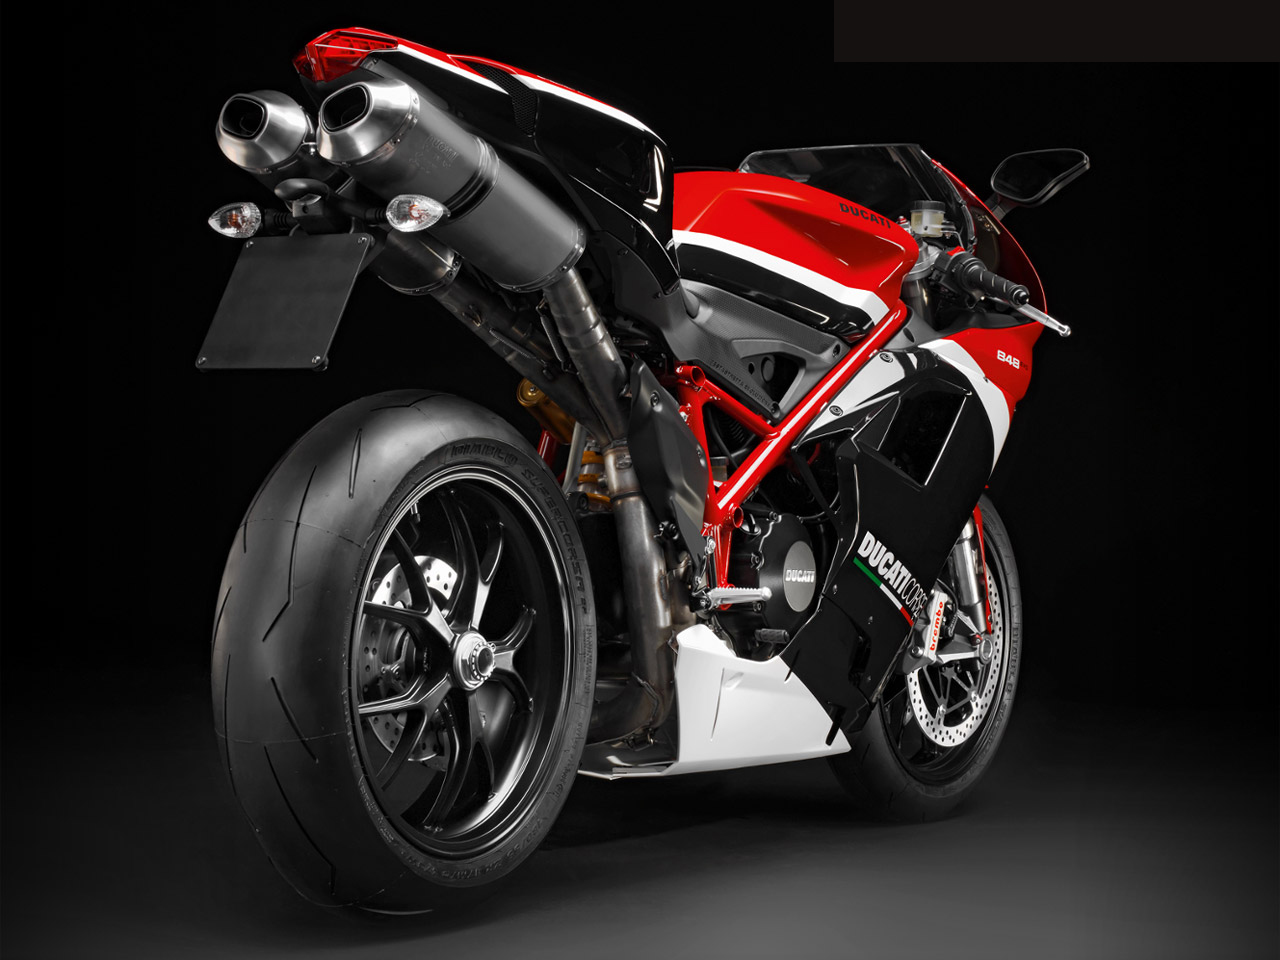 2012 ducati 848 evo corse se review motorcycles specification. Black Bedroom Furniture Sets. Home Design Ideas